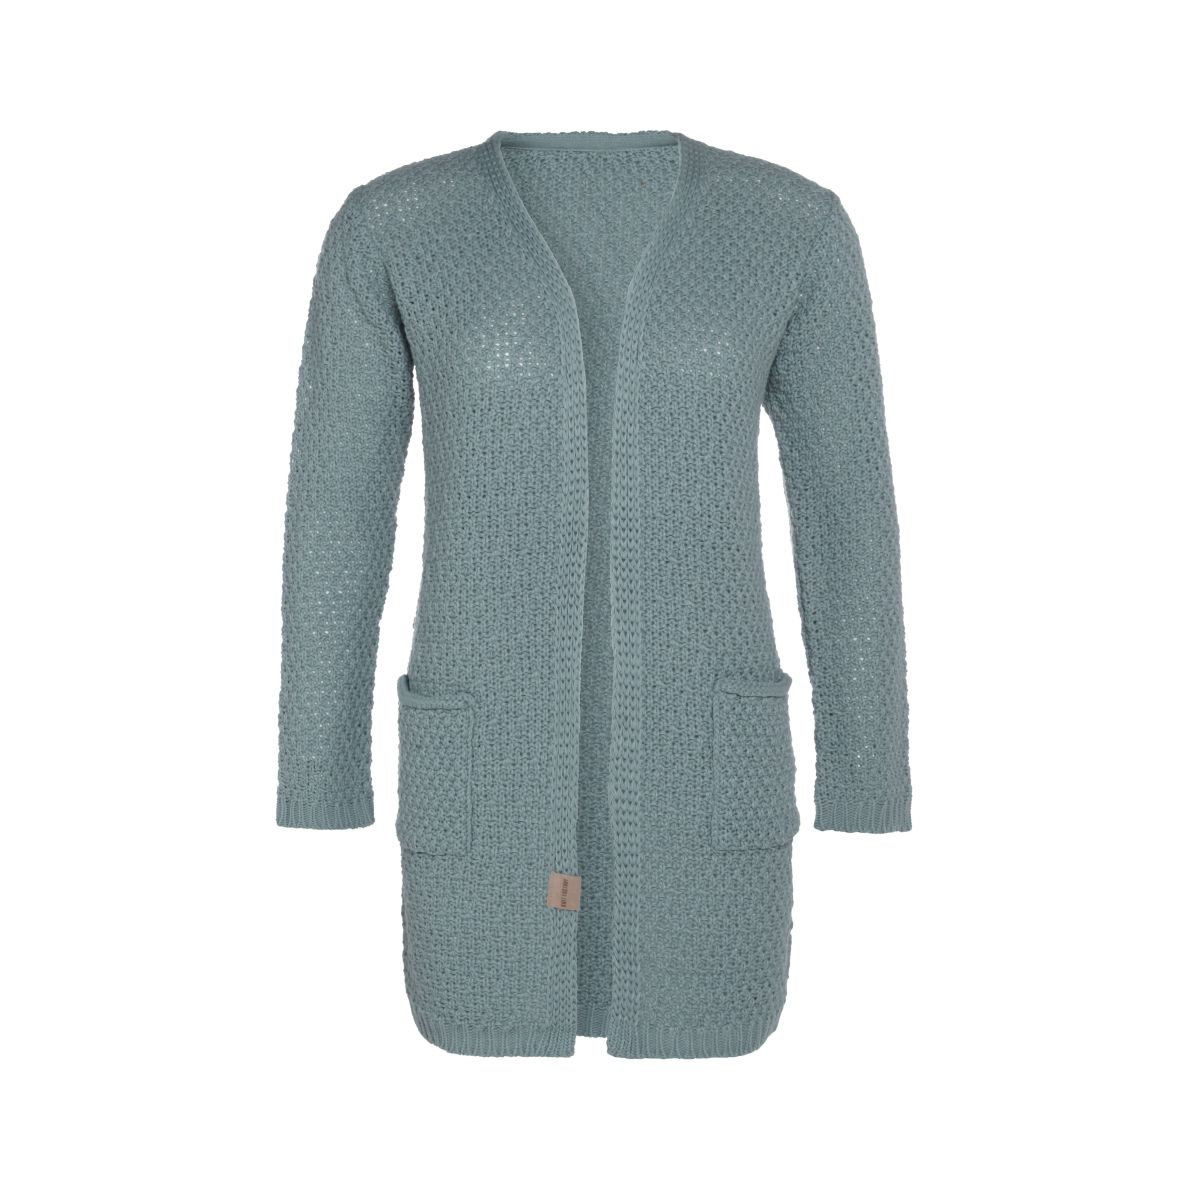 luna knitted cardigan stone green 3638 with side pockets